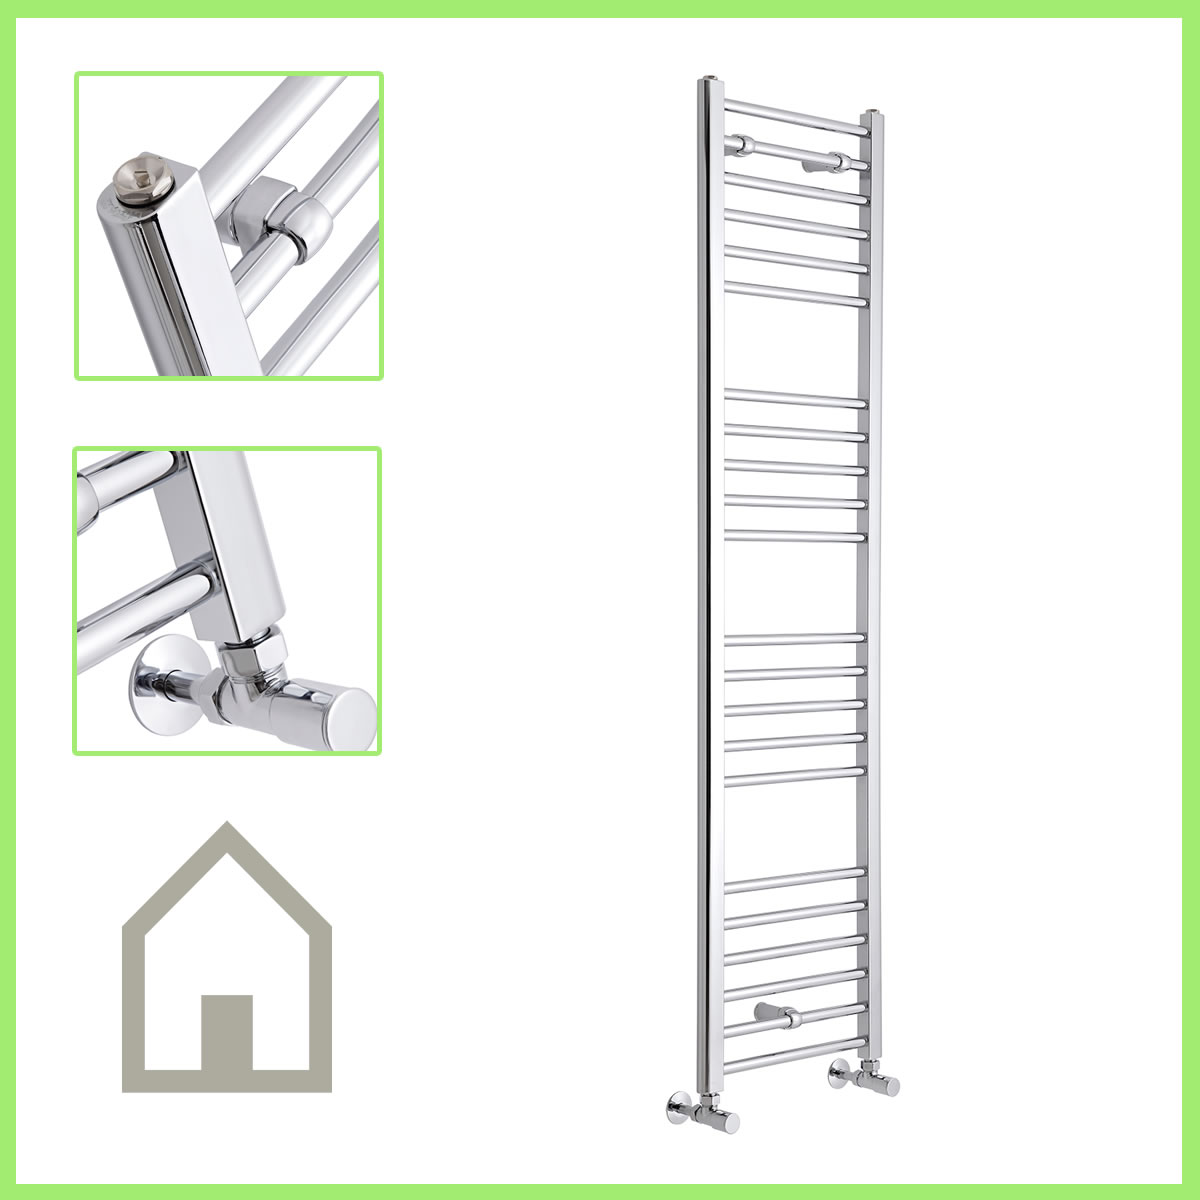 Chrome-Heated-Bathroom-Central-Heating-Towel-Rail-Rad-Radiator-Curved-Flat